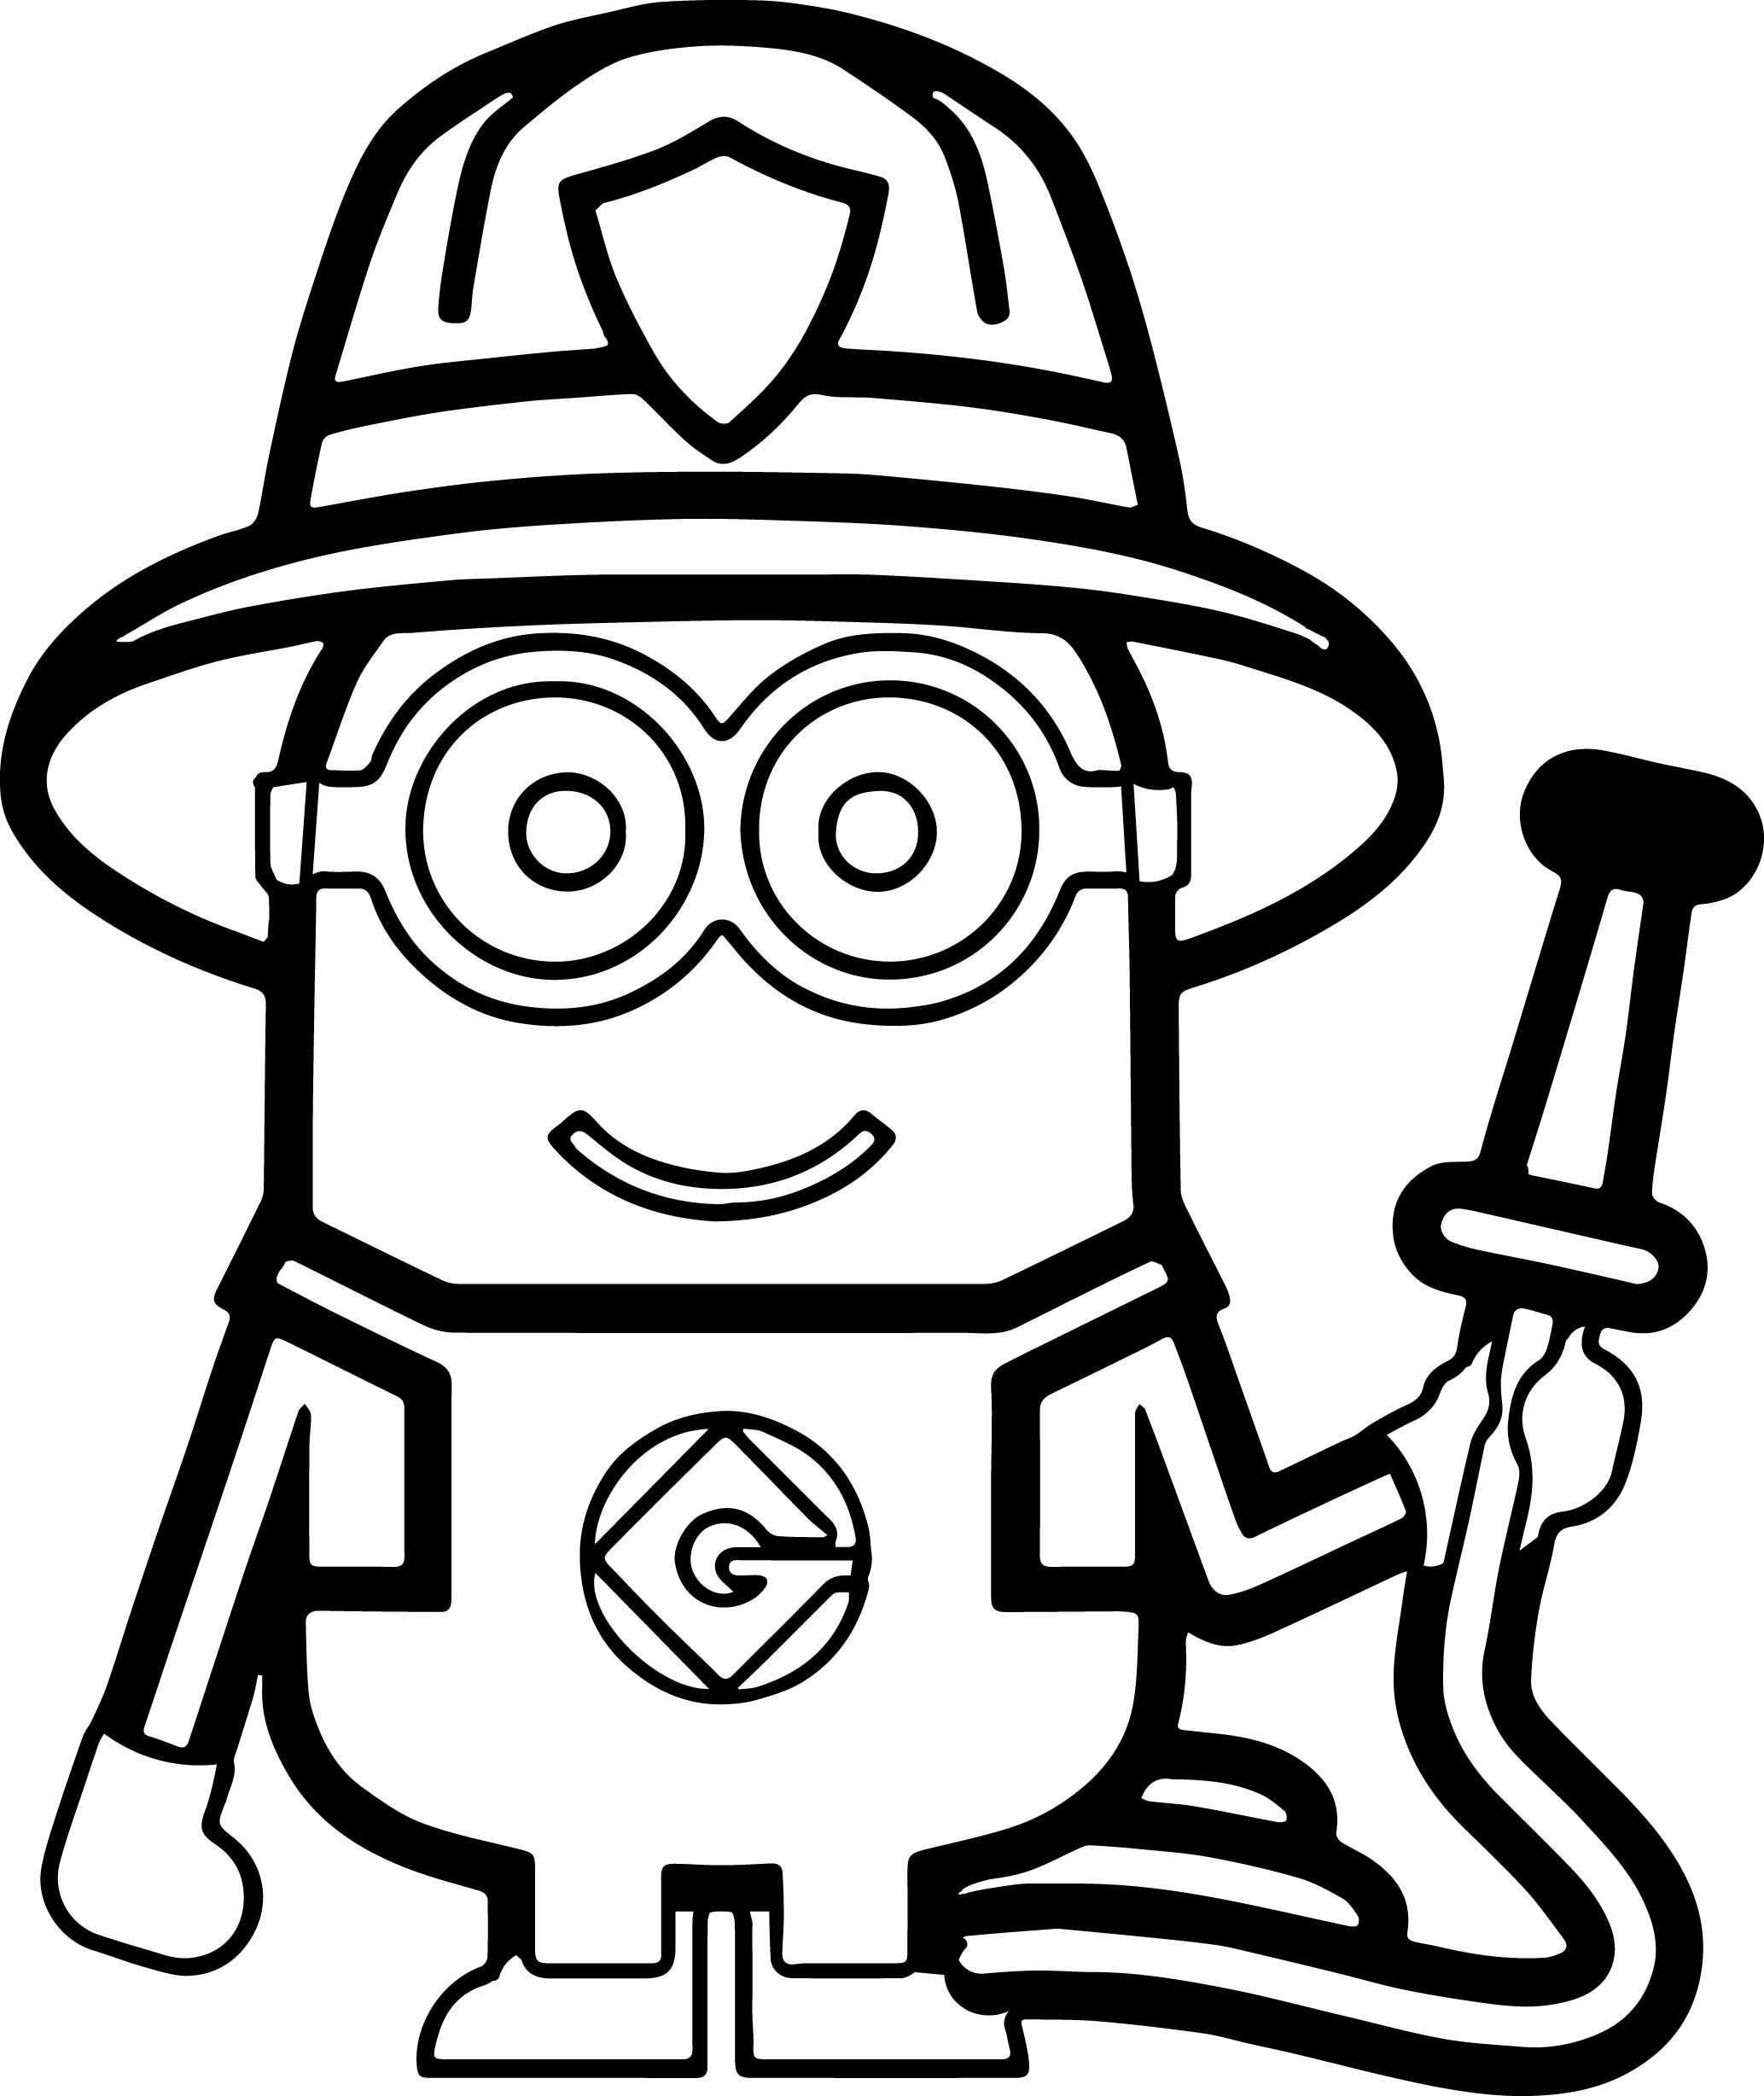 Minions Fireman Coloring Page   Minion coloring pages ...